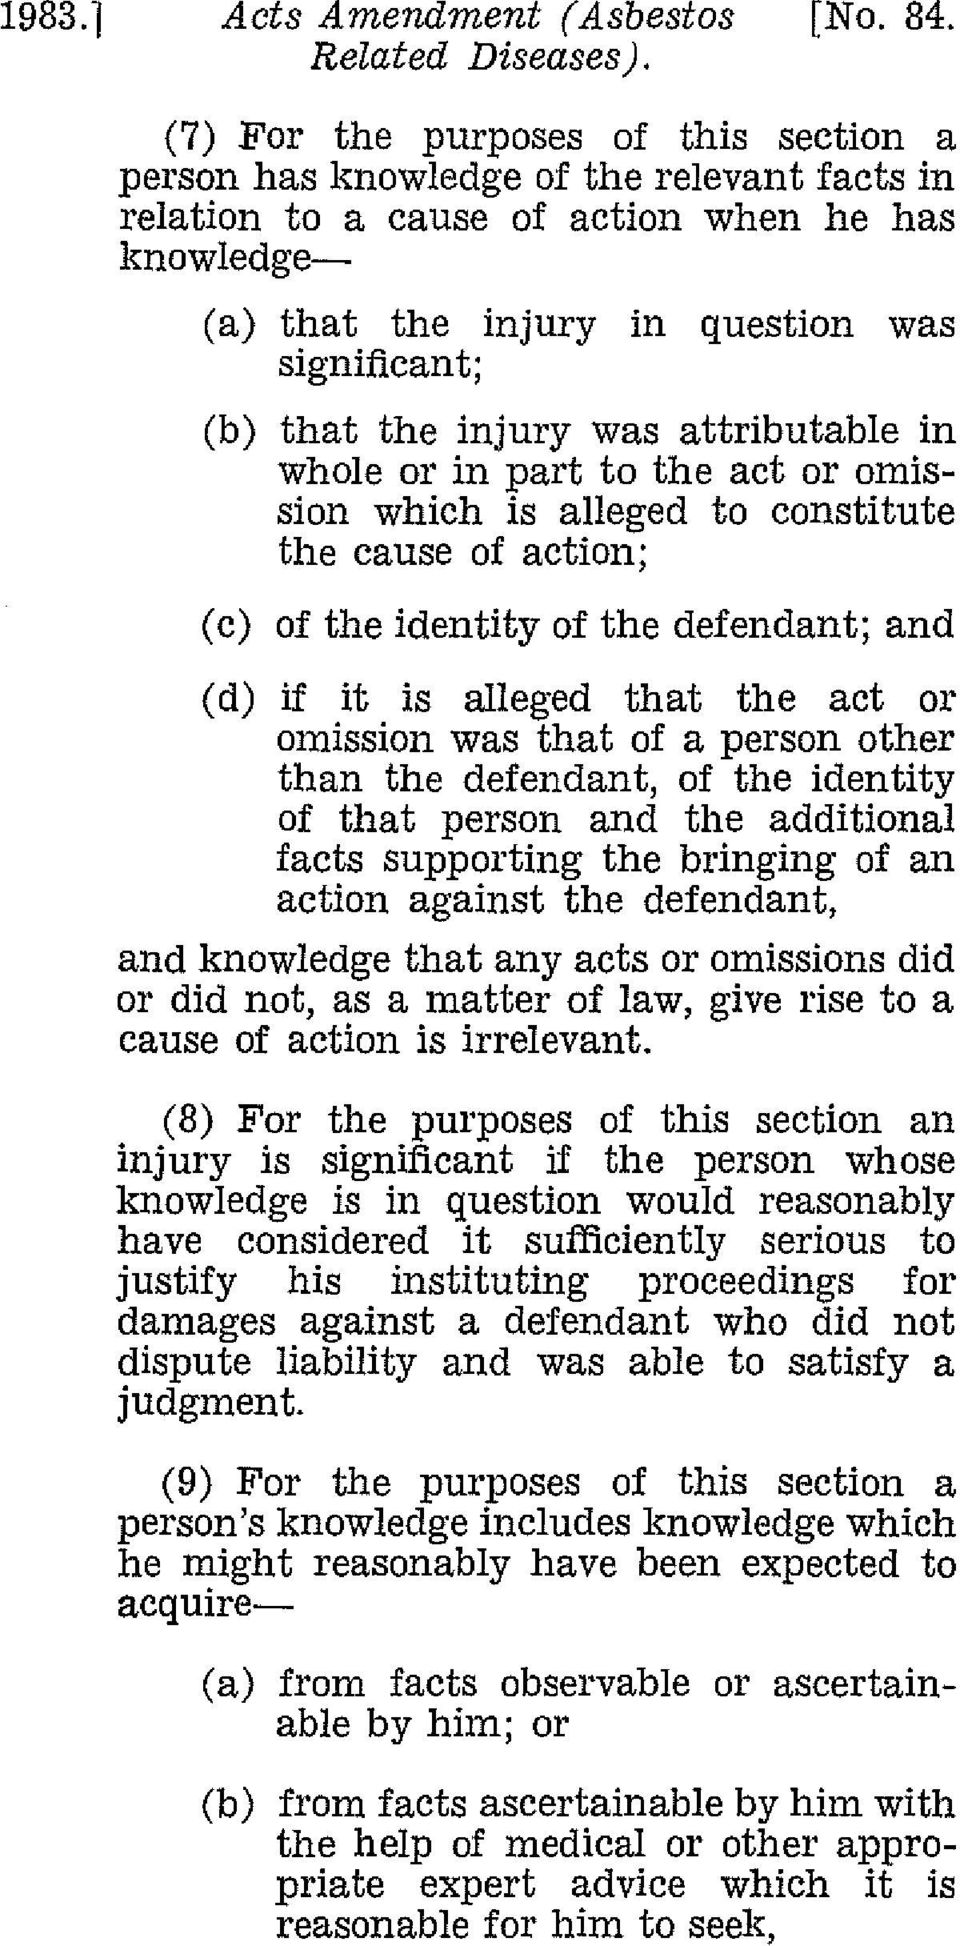 was attributable in whole or in part to the act or omission which is alleged to constitute the cause of action; (c) of the identity of the defendant; and (d) if it is alleged that the act or omission